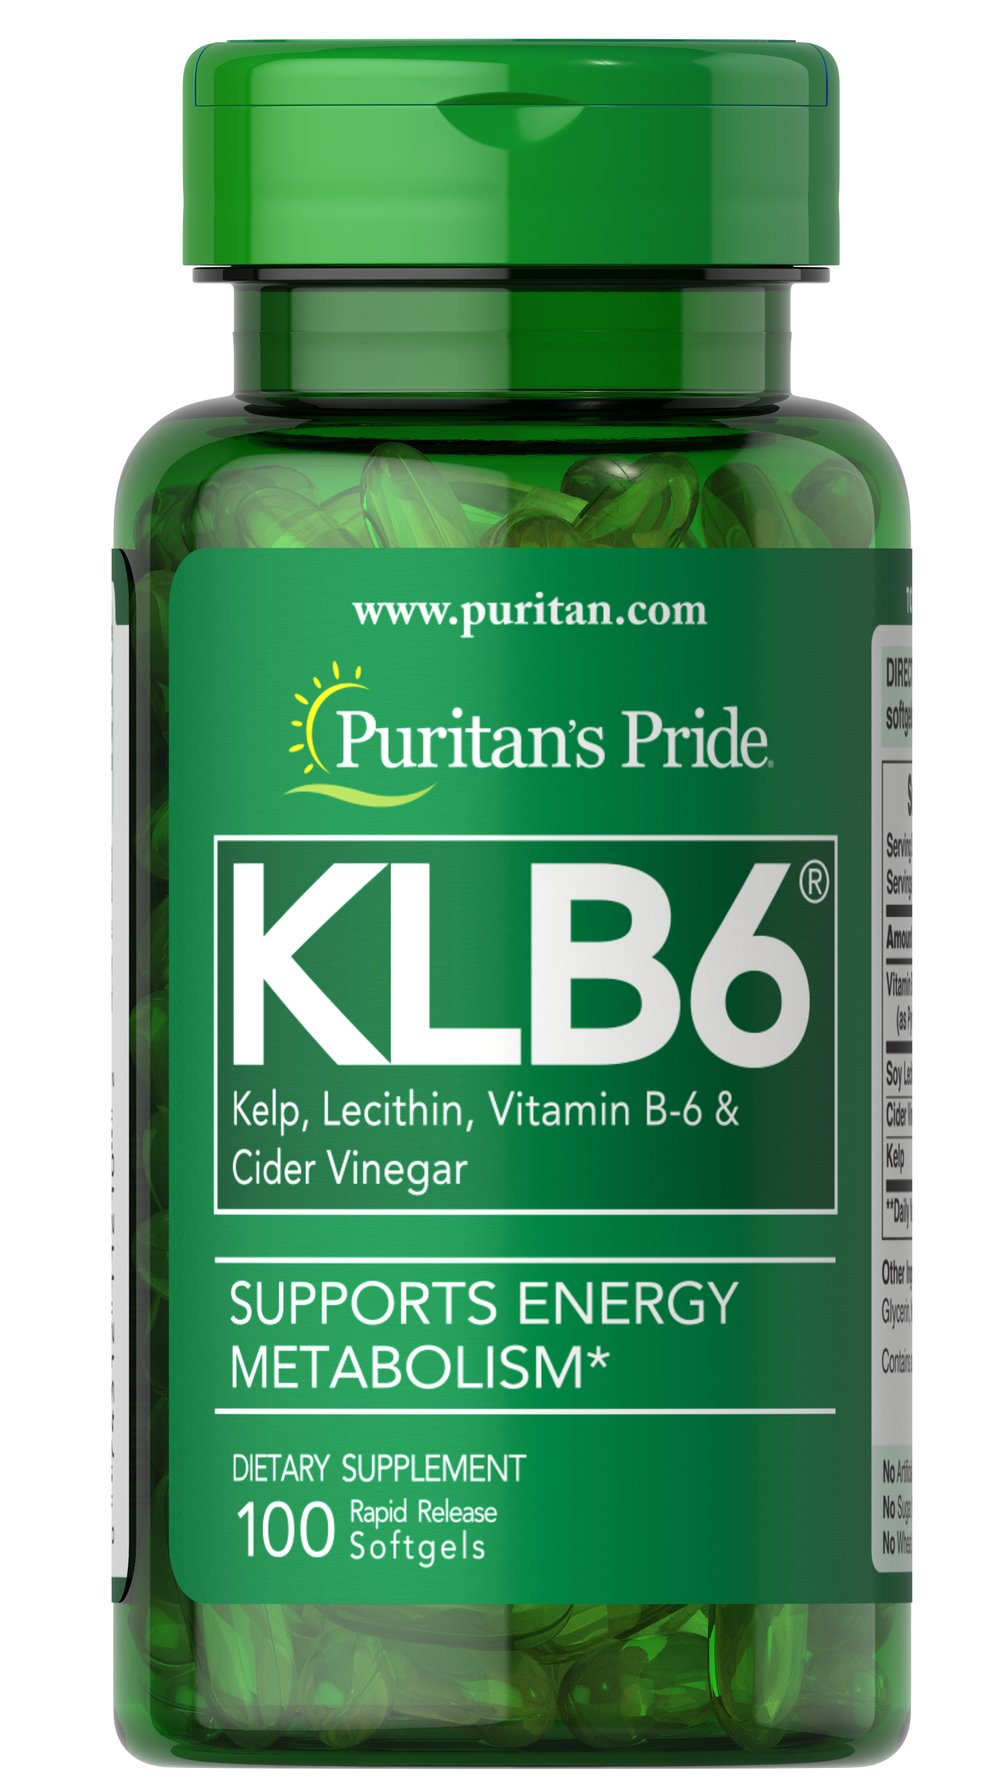 KLB6 Kelp Complex <p>Kelp, Lecithin,  Vitamin B-6 and Cider Vinegar,  all-in-one softgel.  Kelp works to maintain a healthy thyroid; Lecithin is an excellent natural source of choline and inositol; B-6 functions as a coenzyme involved in protein and fat metabolism; and Cider Vinegar is a natural and rich source of potassium and other associated minerals.**</p> 100 Softgels  $10.99